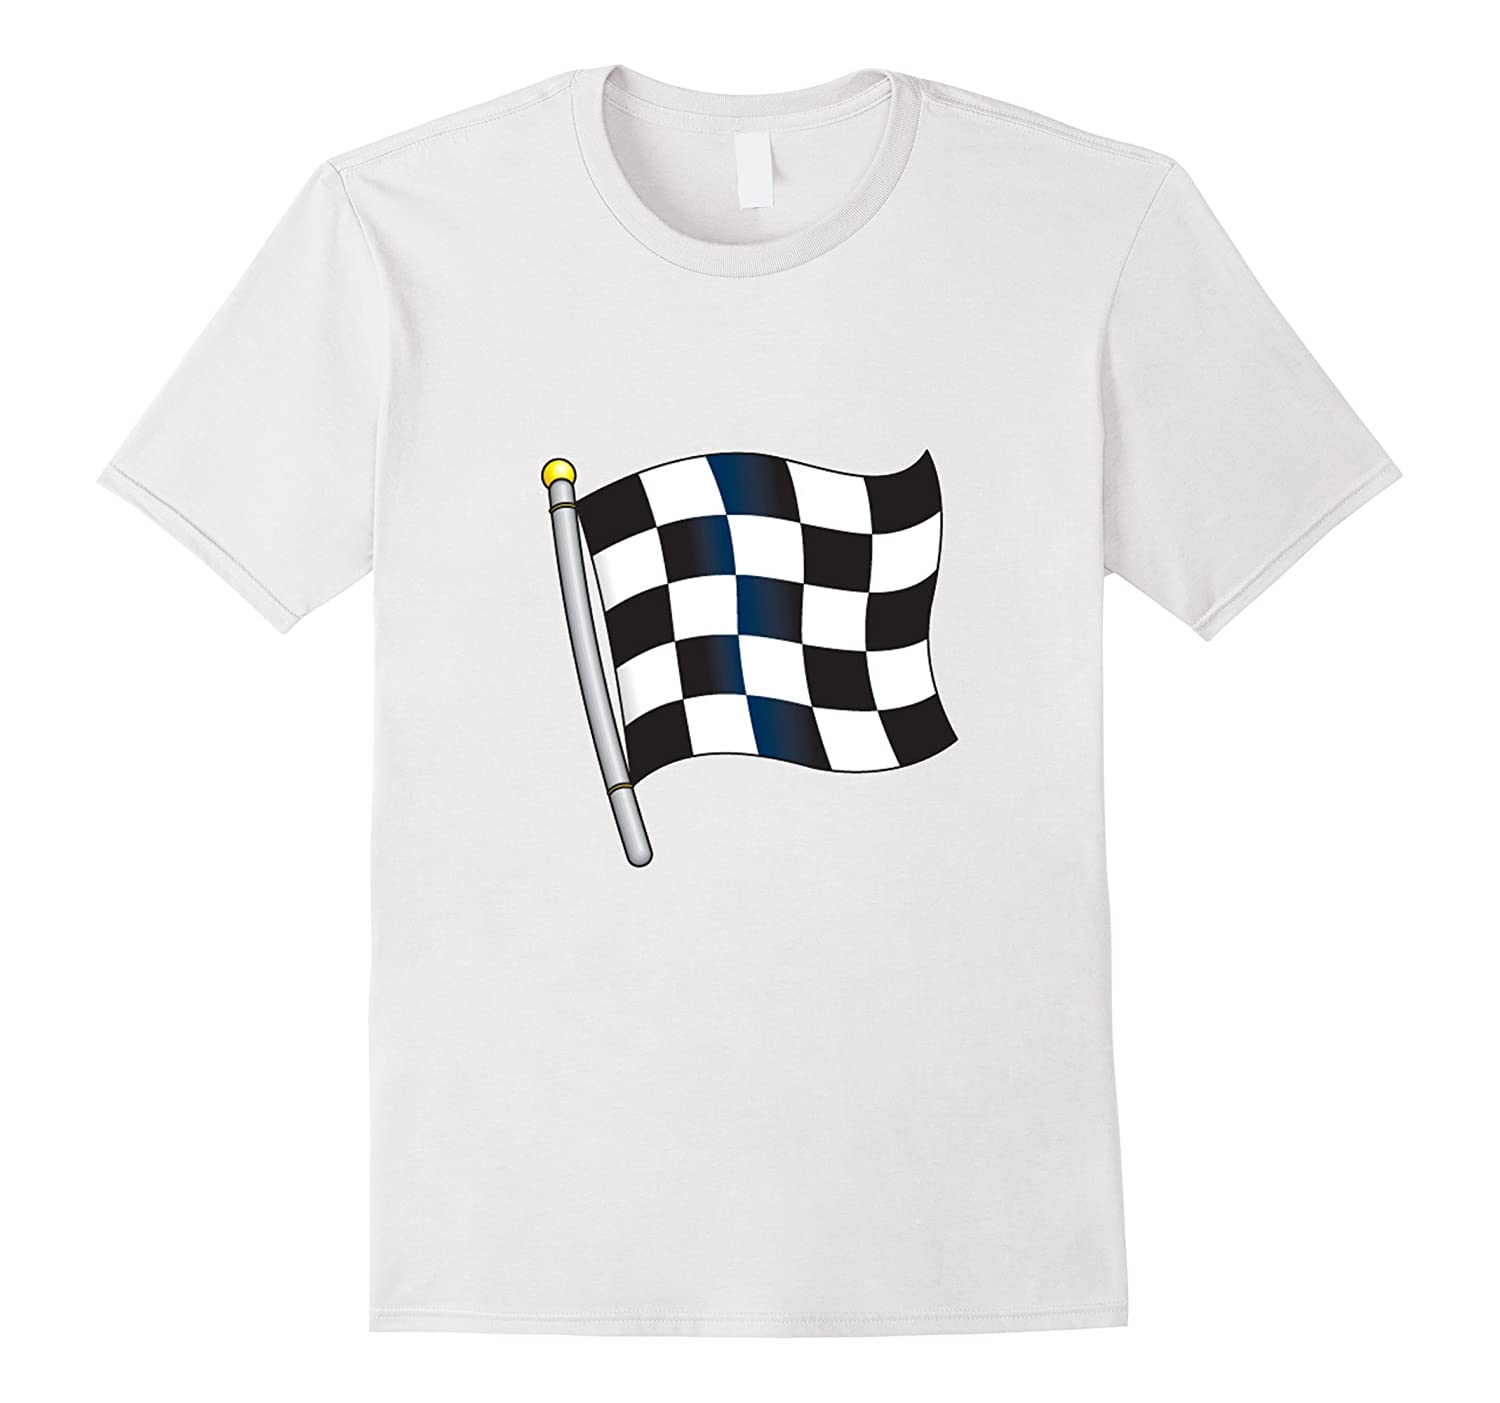 Checkered Flag Emoji T Shirt Race Car Flag Pole Goatstee